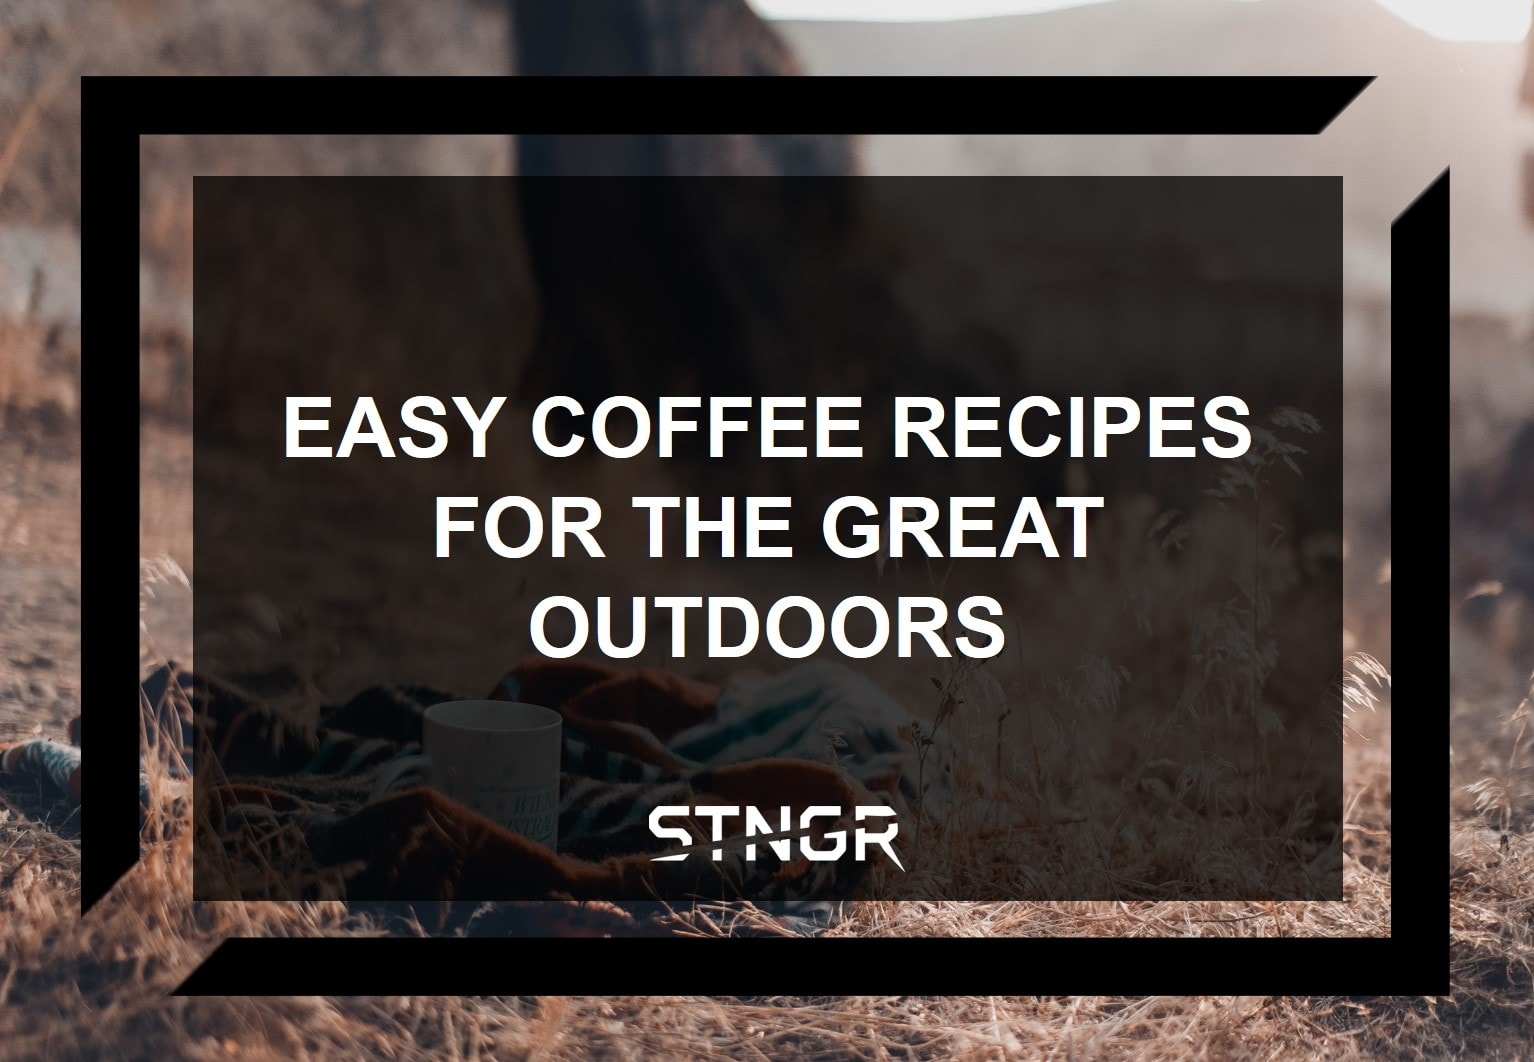 Easy Coffee Recipes for the Great Outdoors